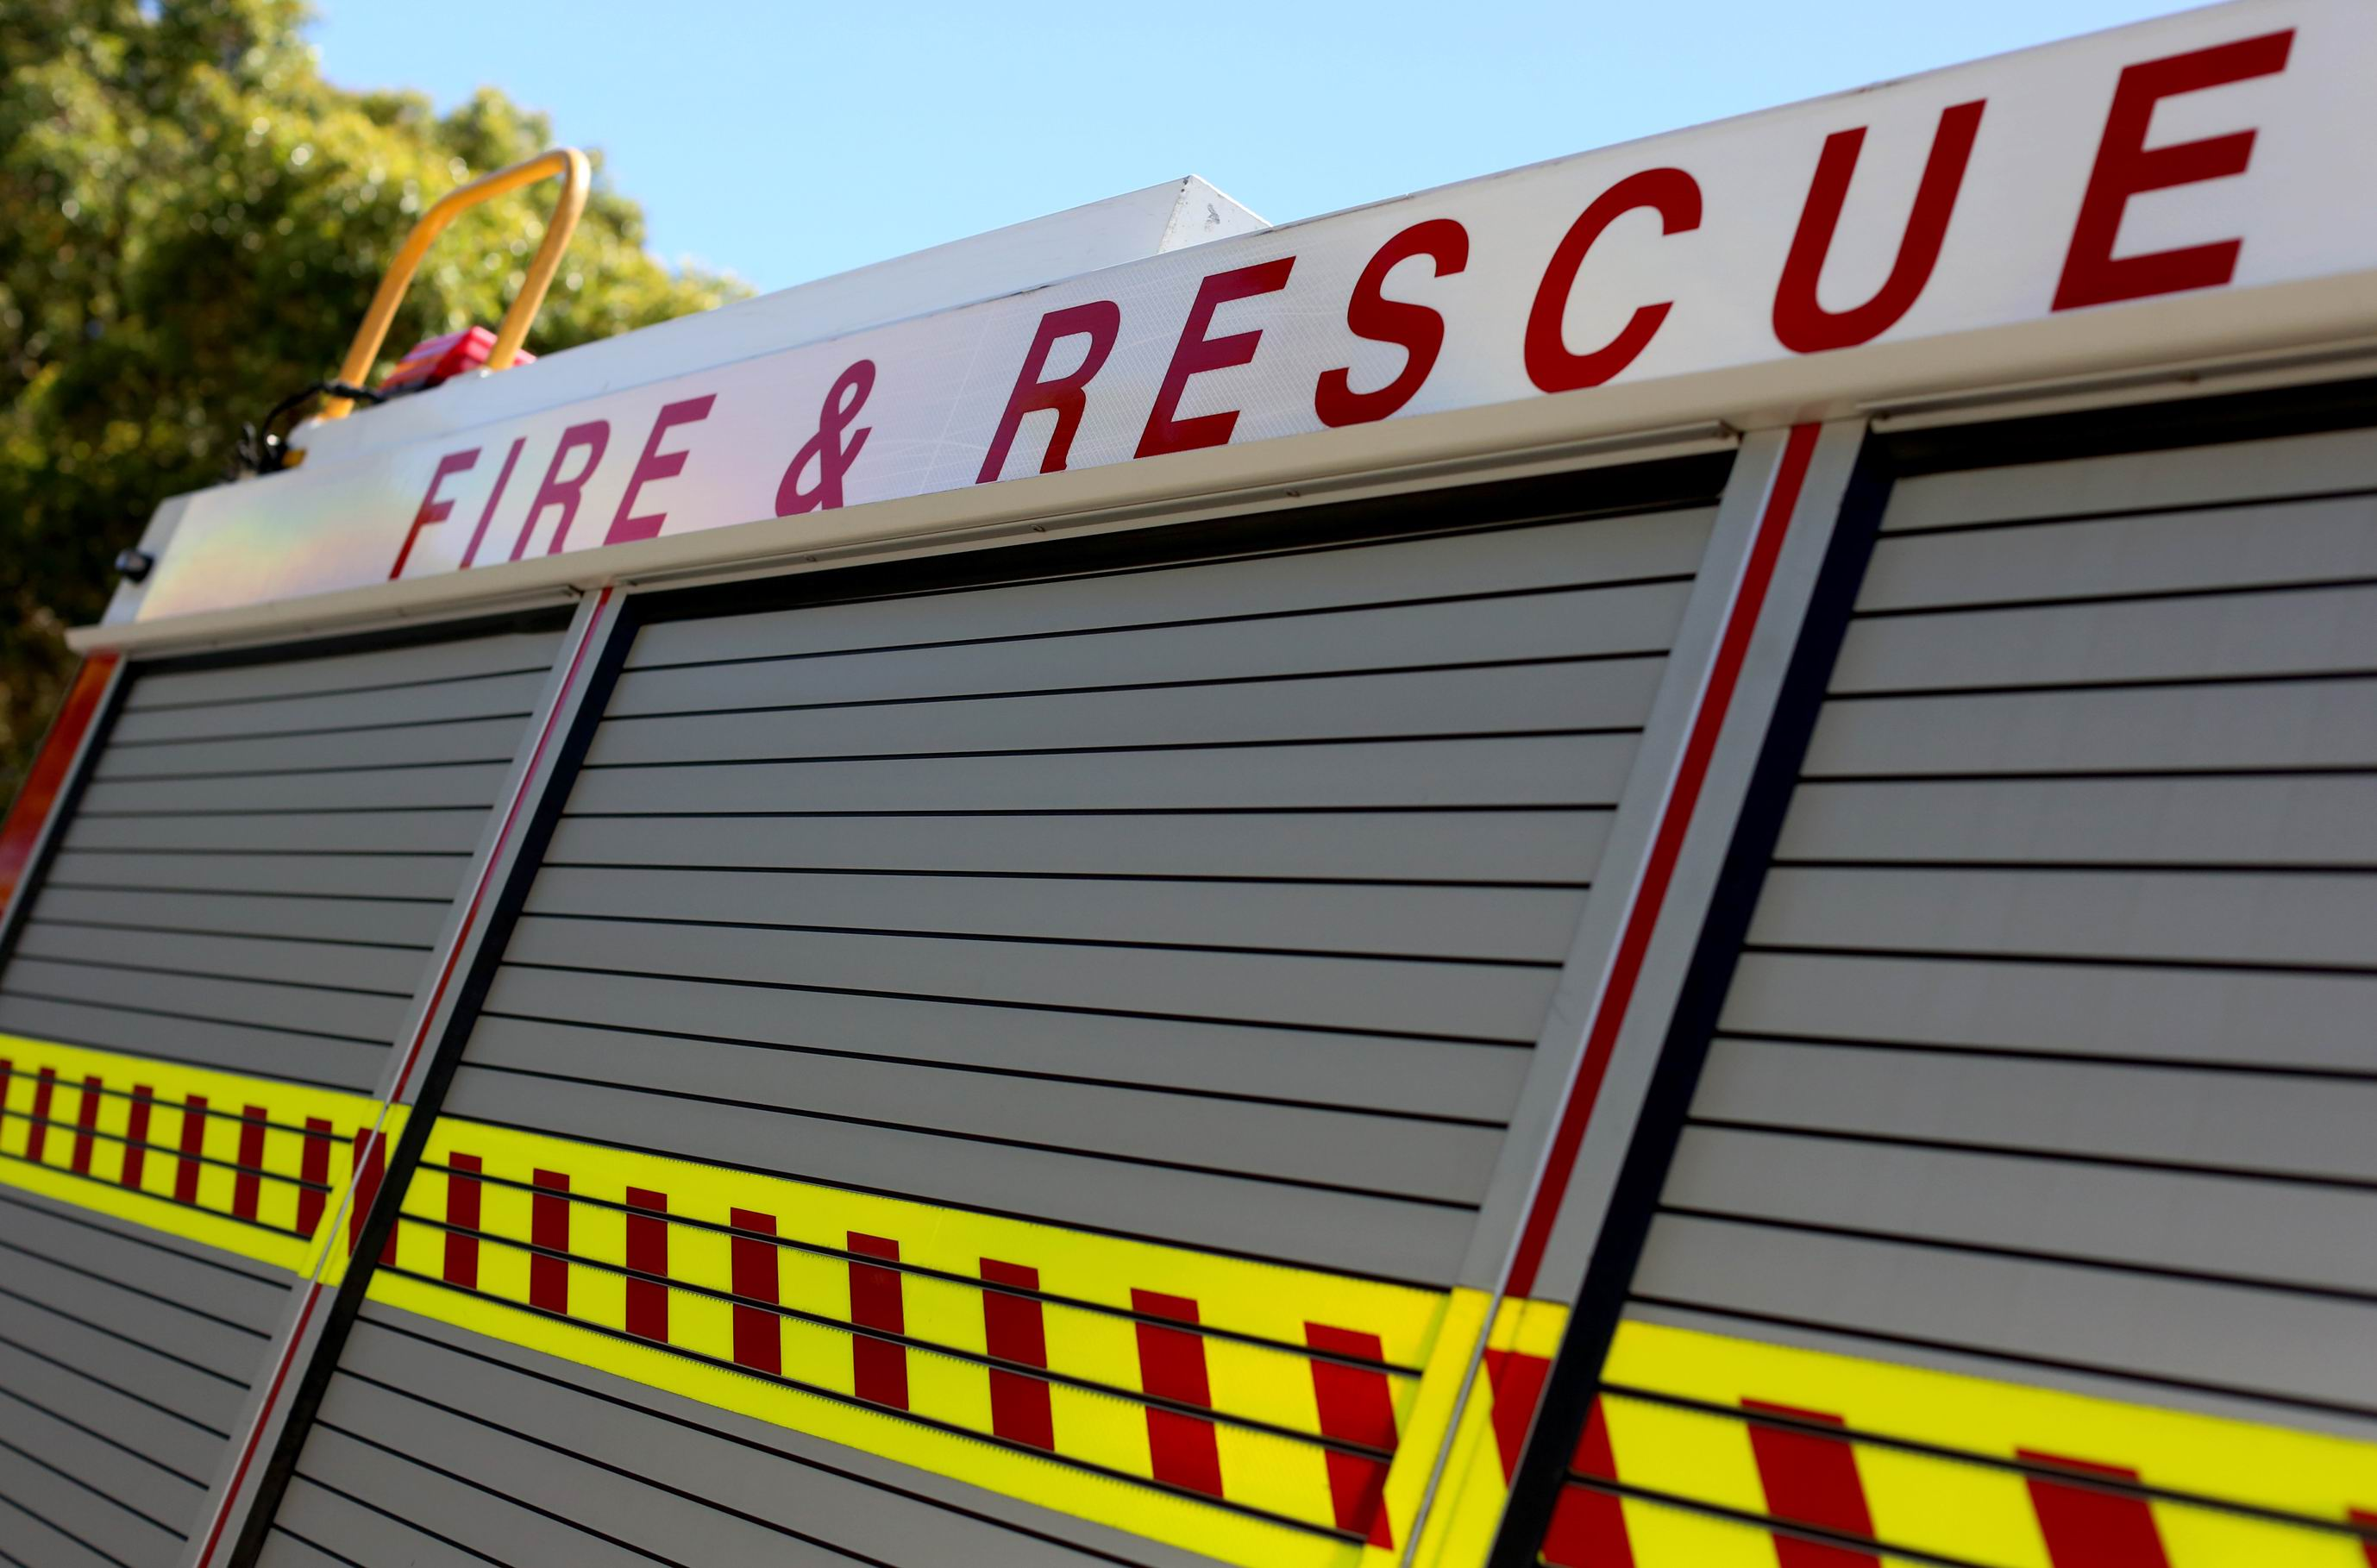 Yanchep Beach PS fire may have been started by electrical fault in skylight